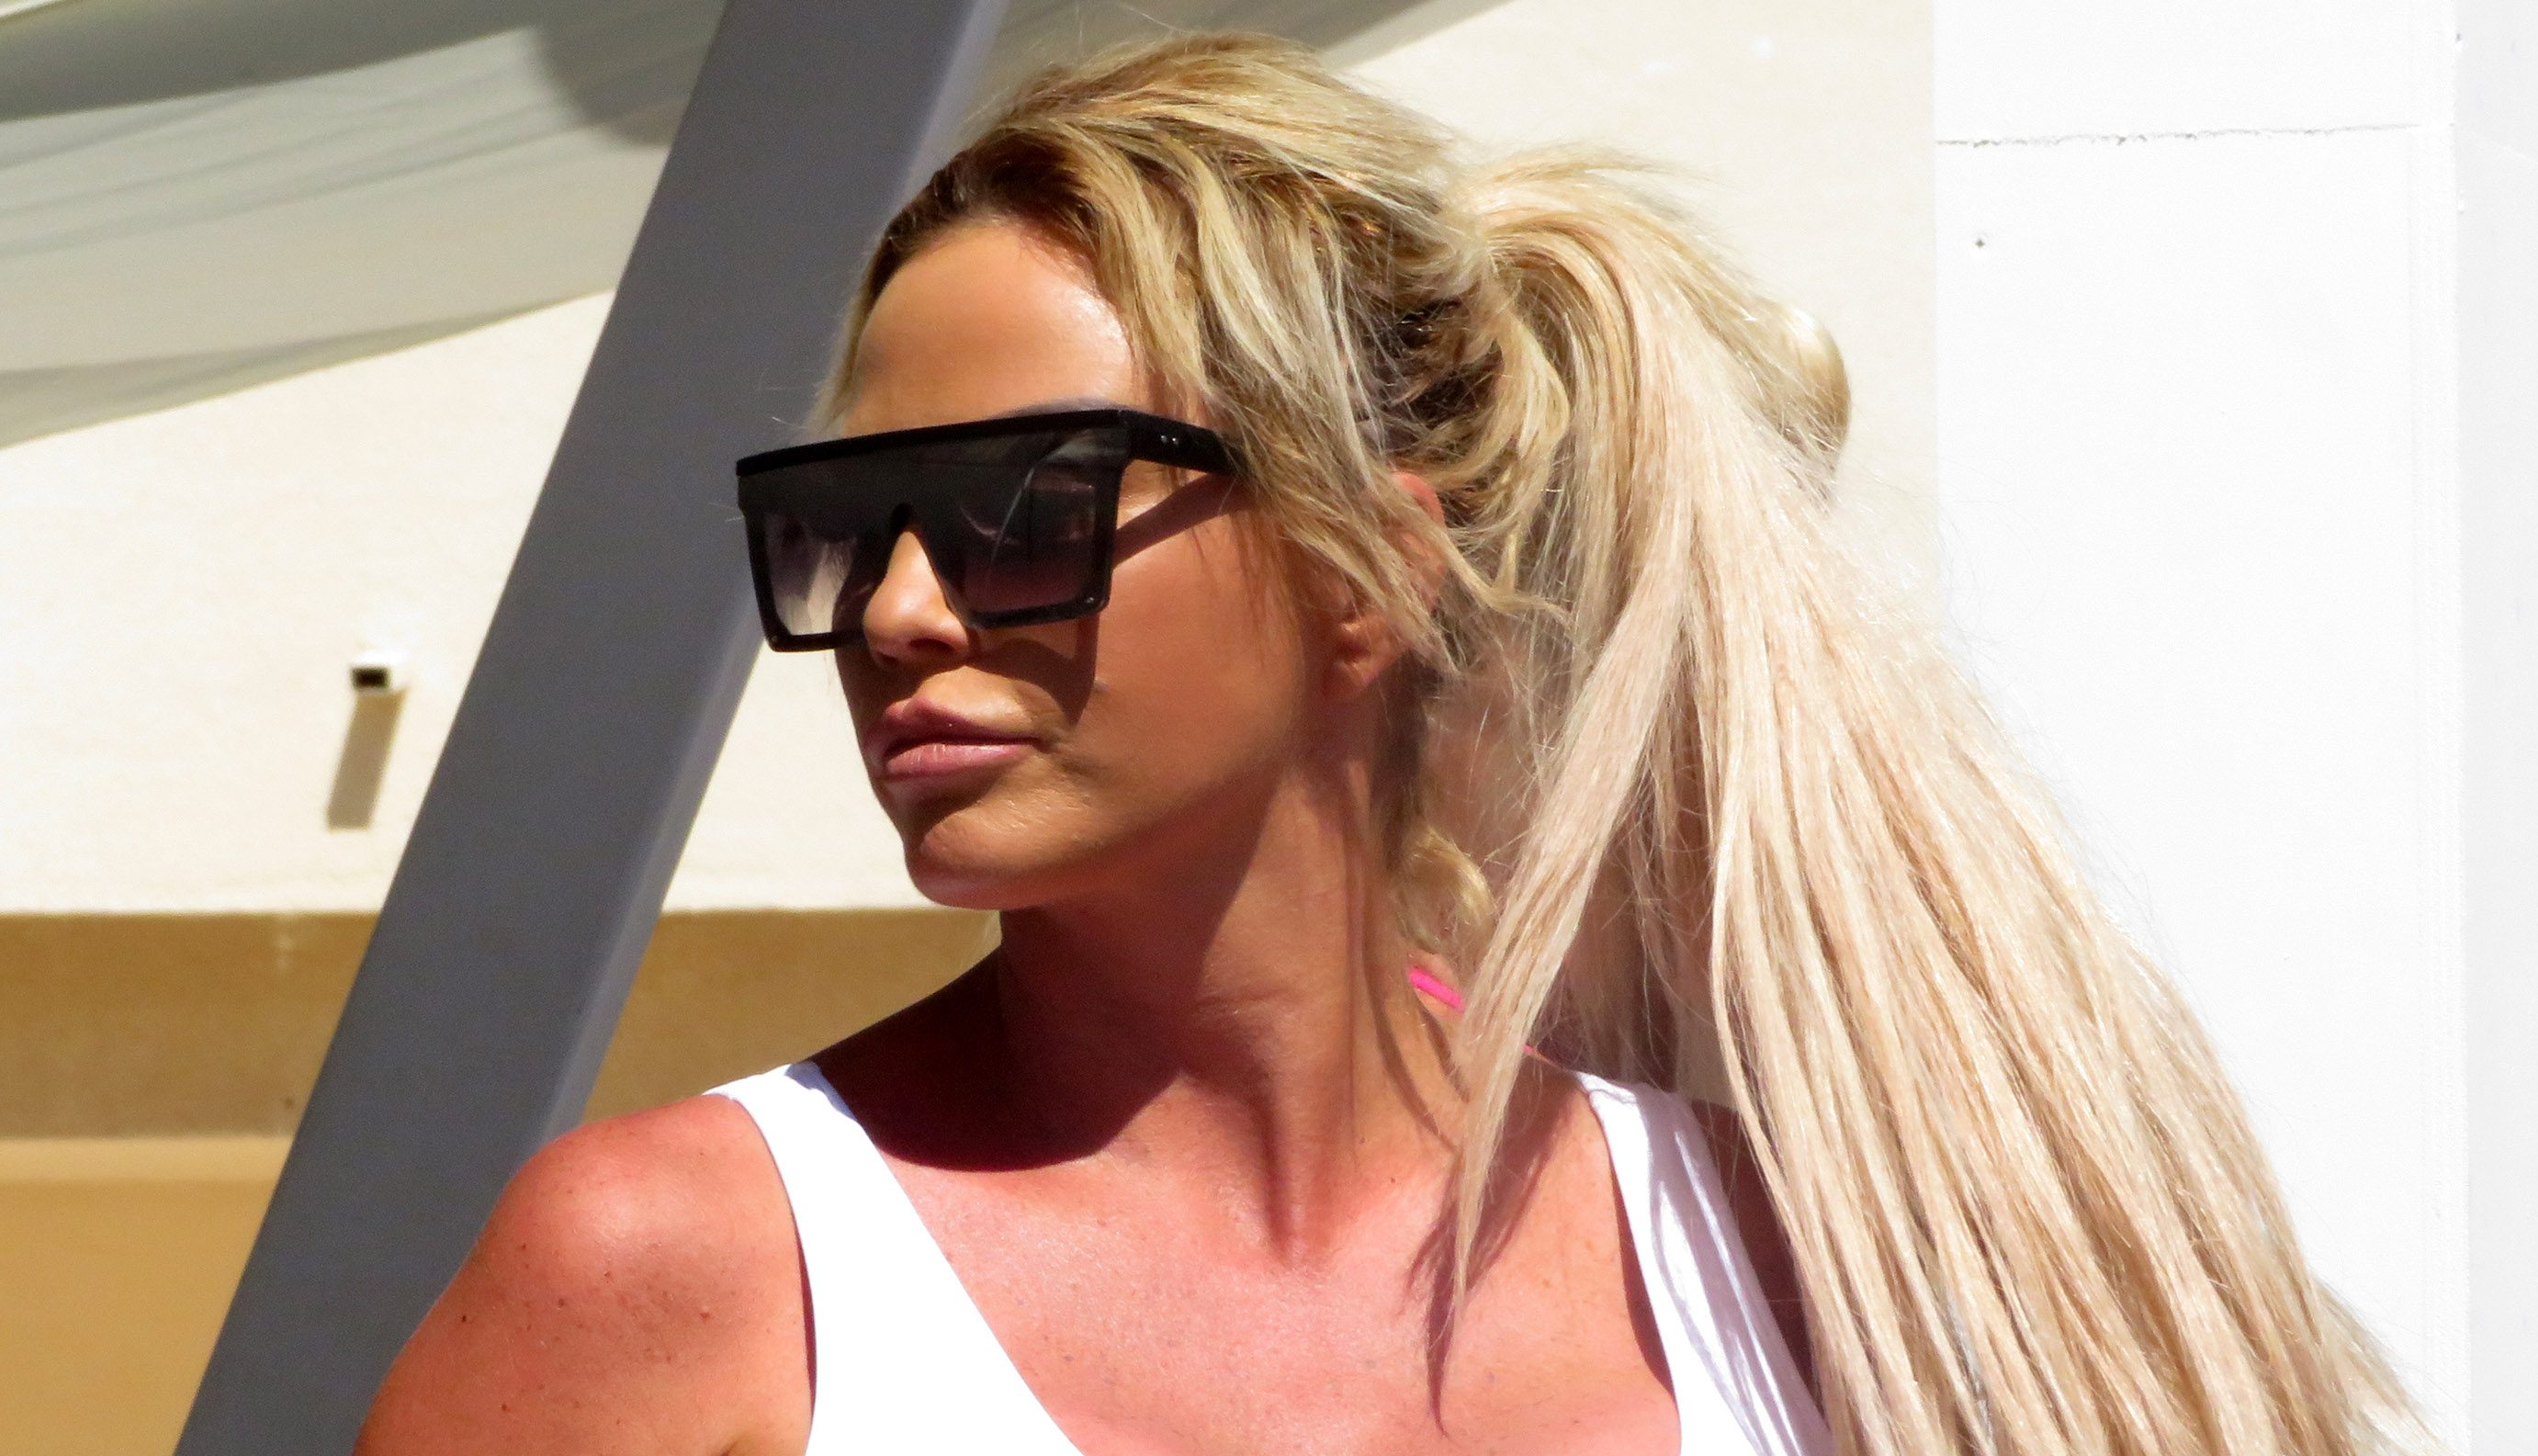 Katie Price to lose 'mucky mansion' home as she heads back to court?